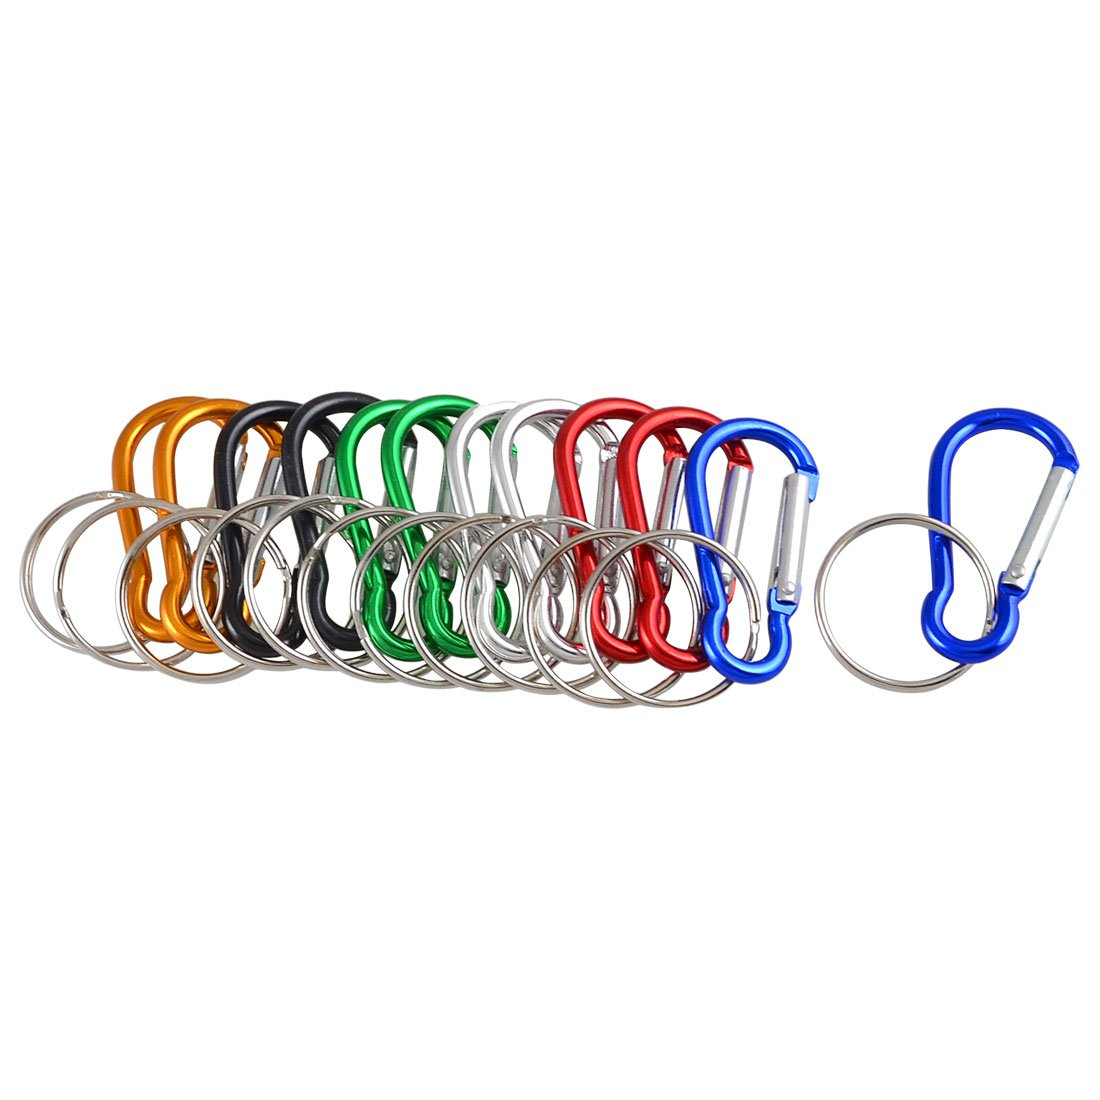 EDFY Assorted Color Aluminum Carabiner Key Ring Keychain Holder 12 Pcs<br><br>Aliexpress